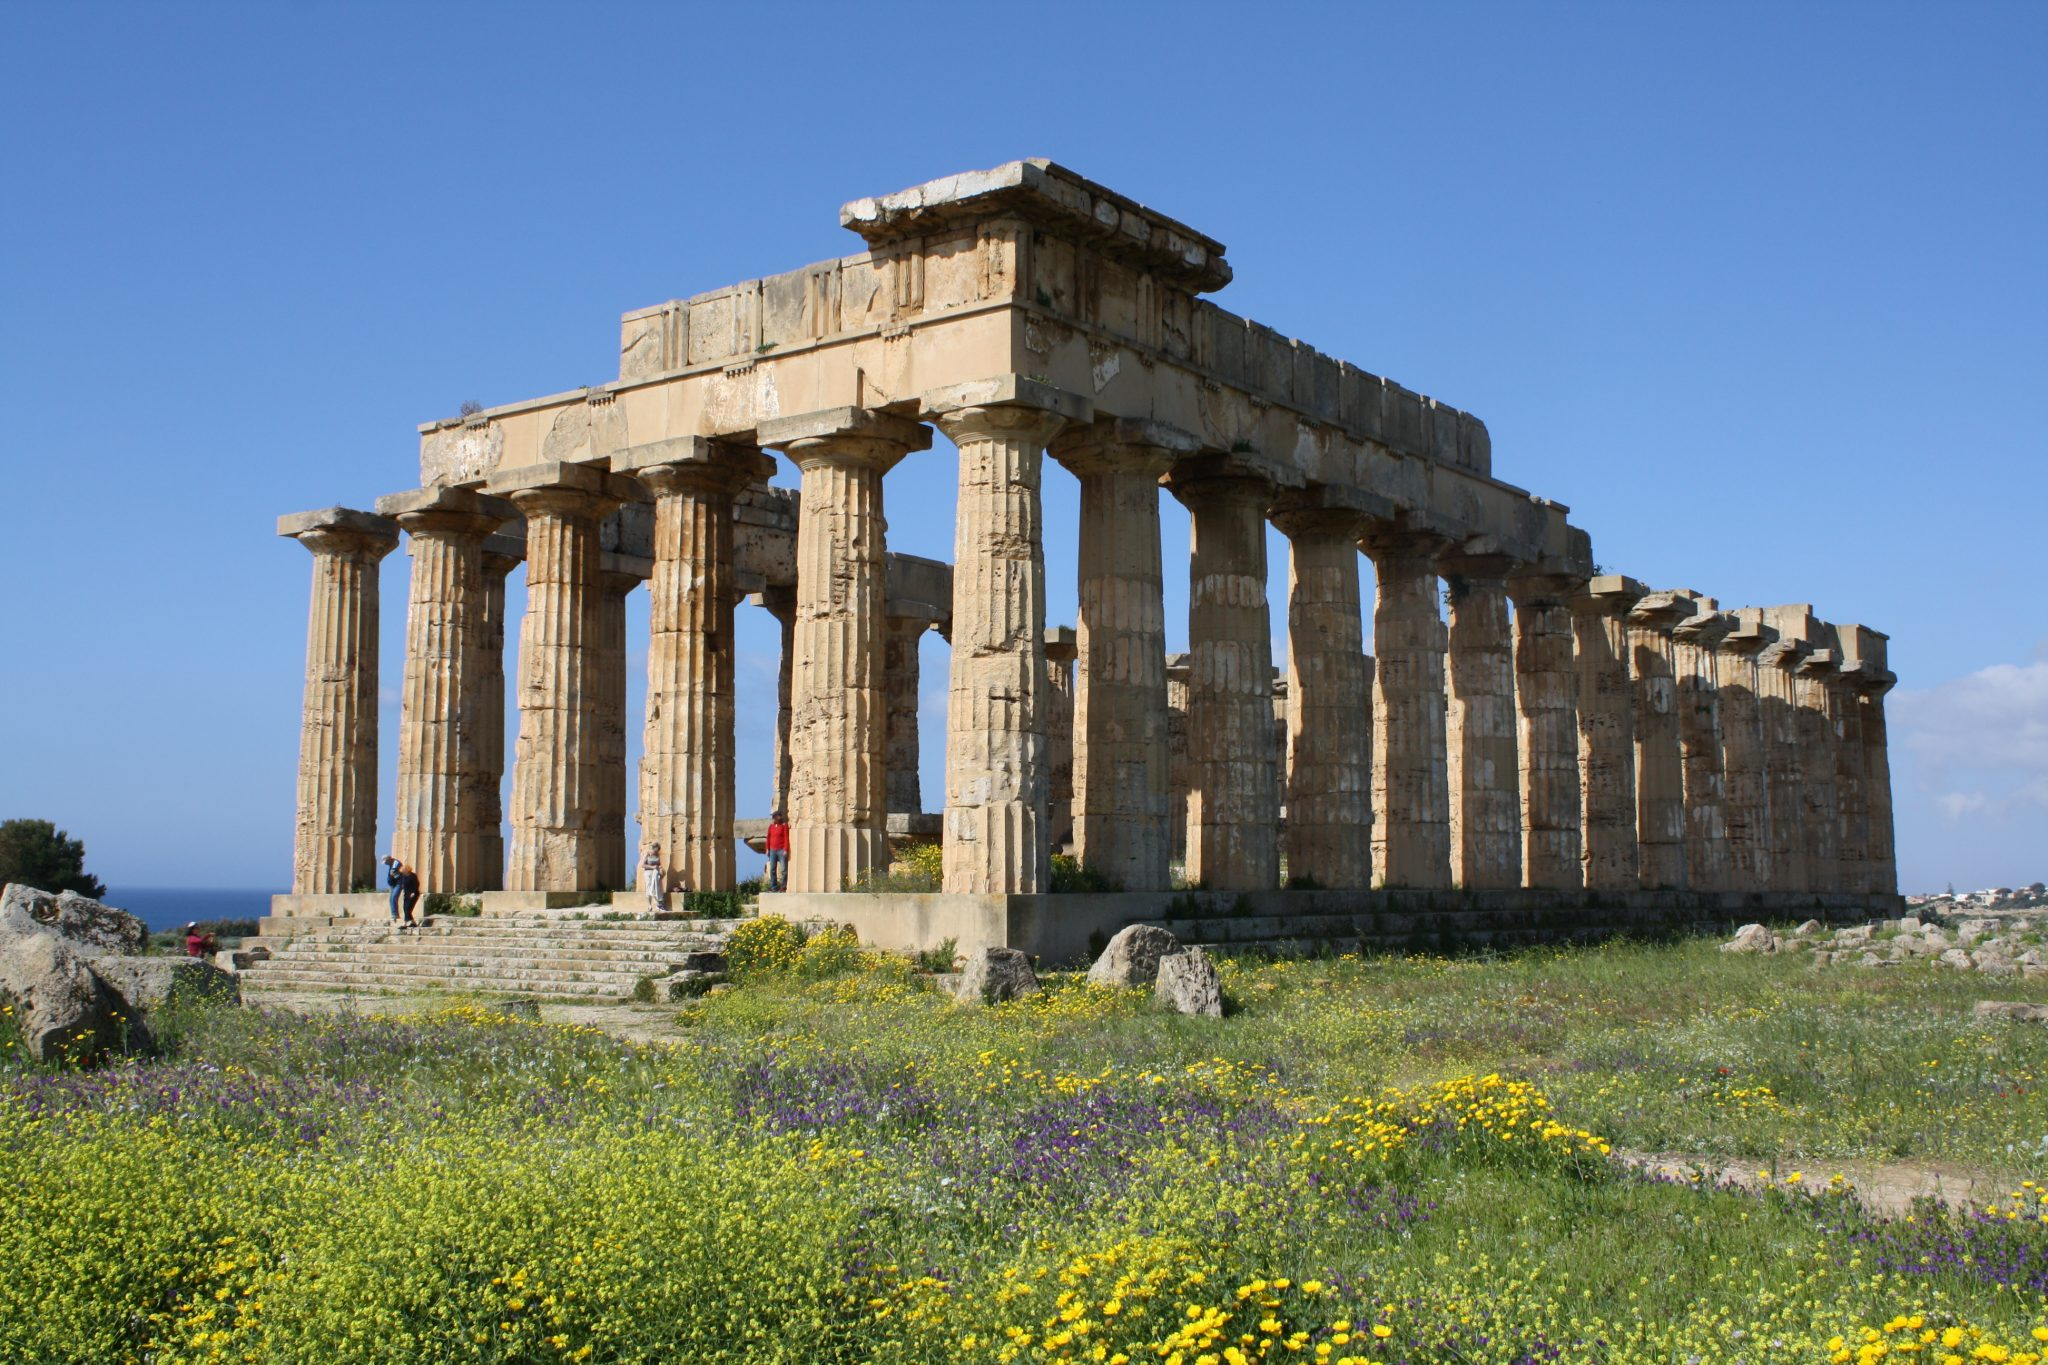 8 Ancient Greek Temples Ancient History et cetera